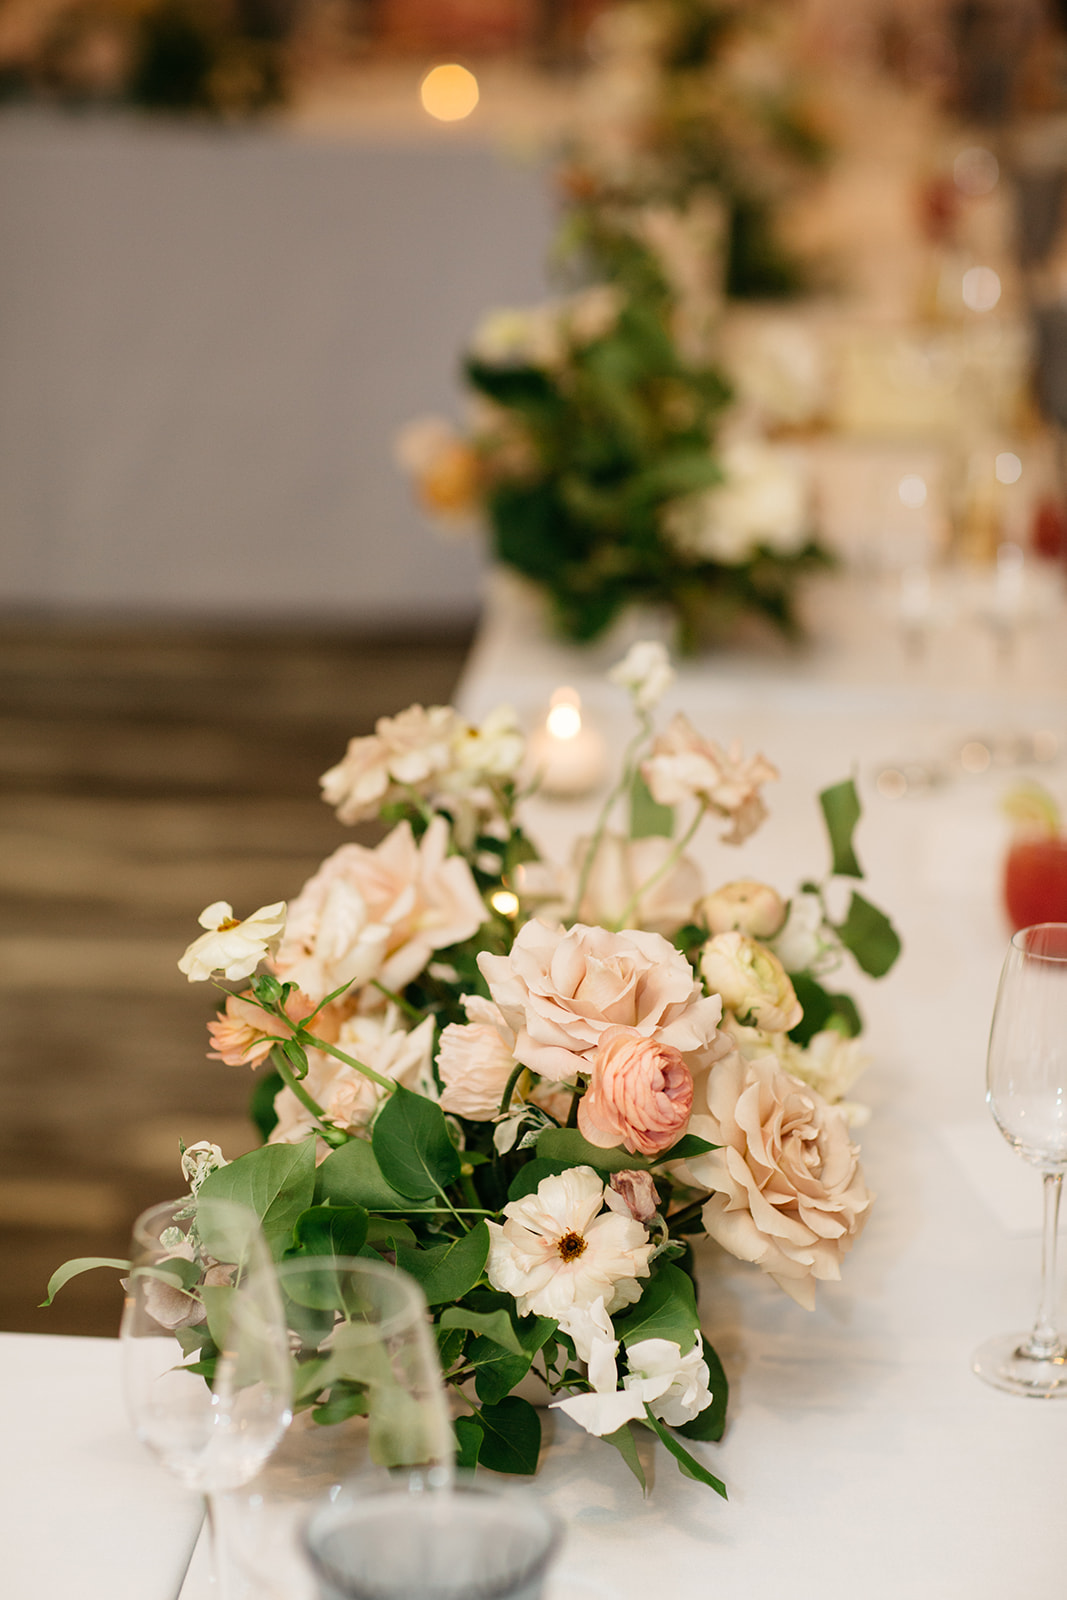 springtime centerpieces by Good Things Floral Co - springtime wedding florals - image from www.emmasedition.com